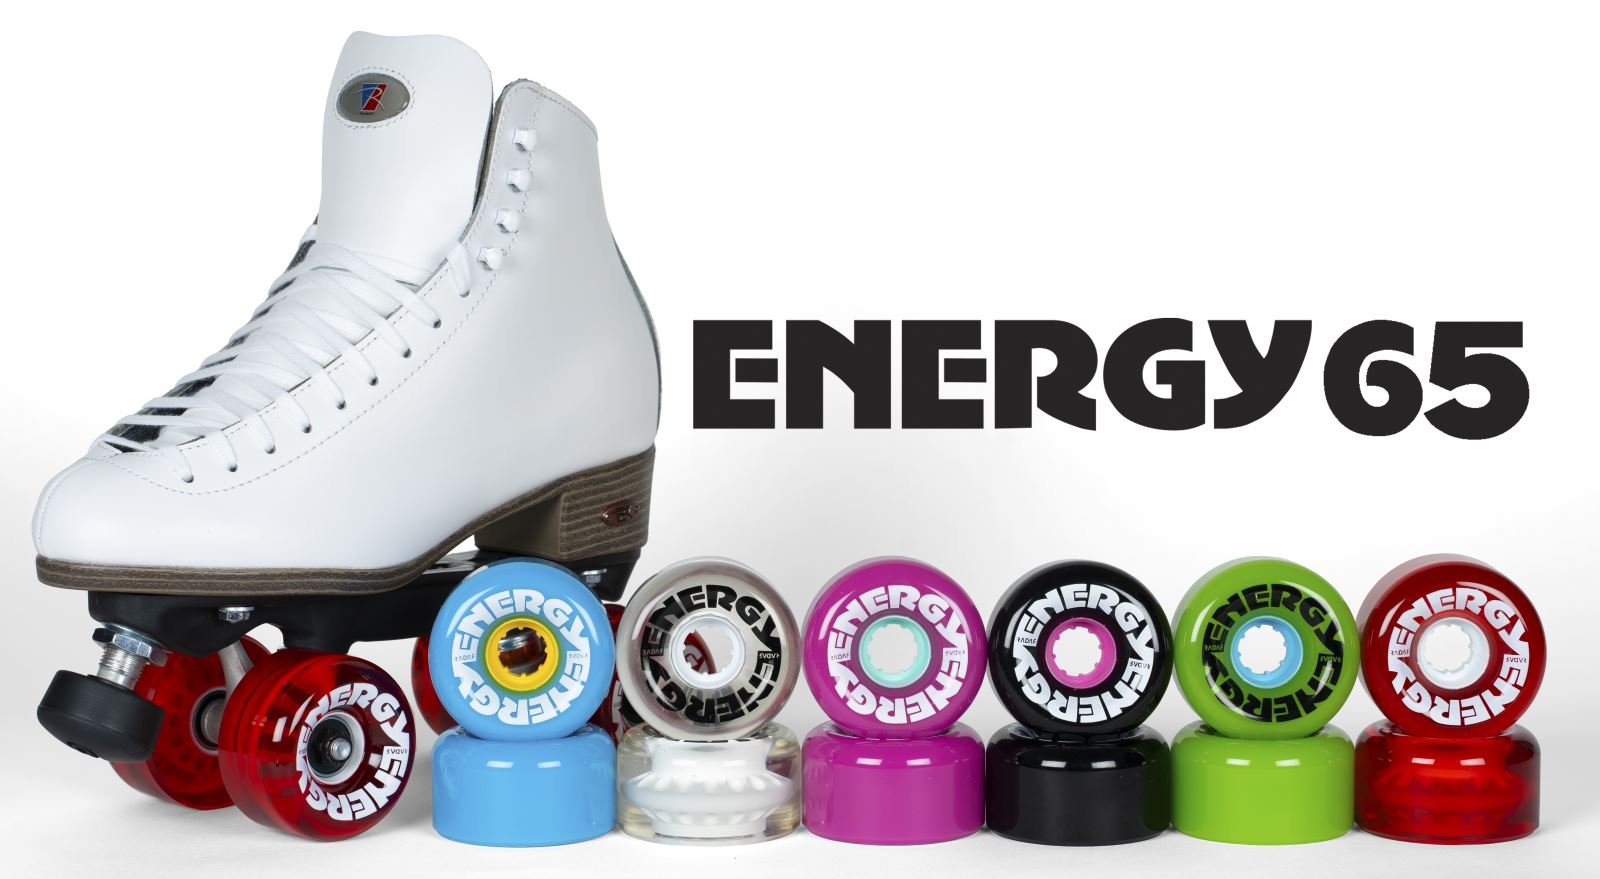 Radar Energy 65 Outdoor Roller Skating Wheels